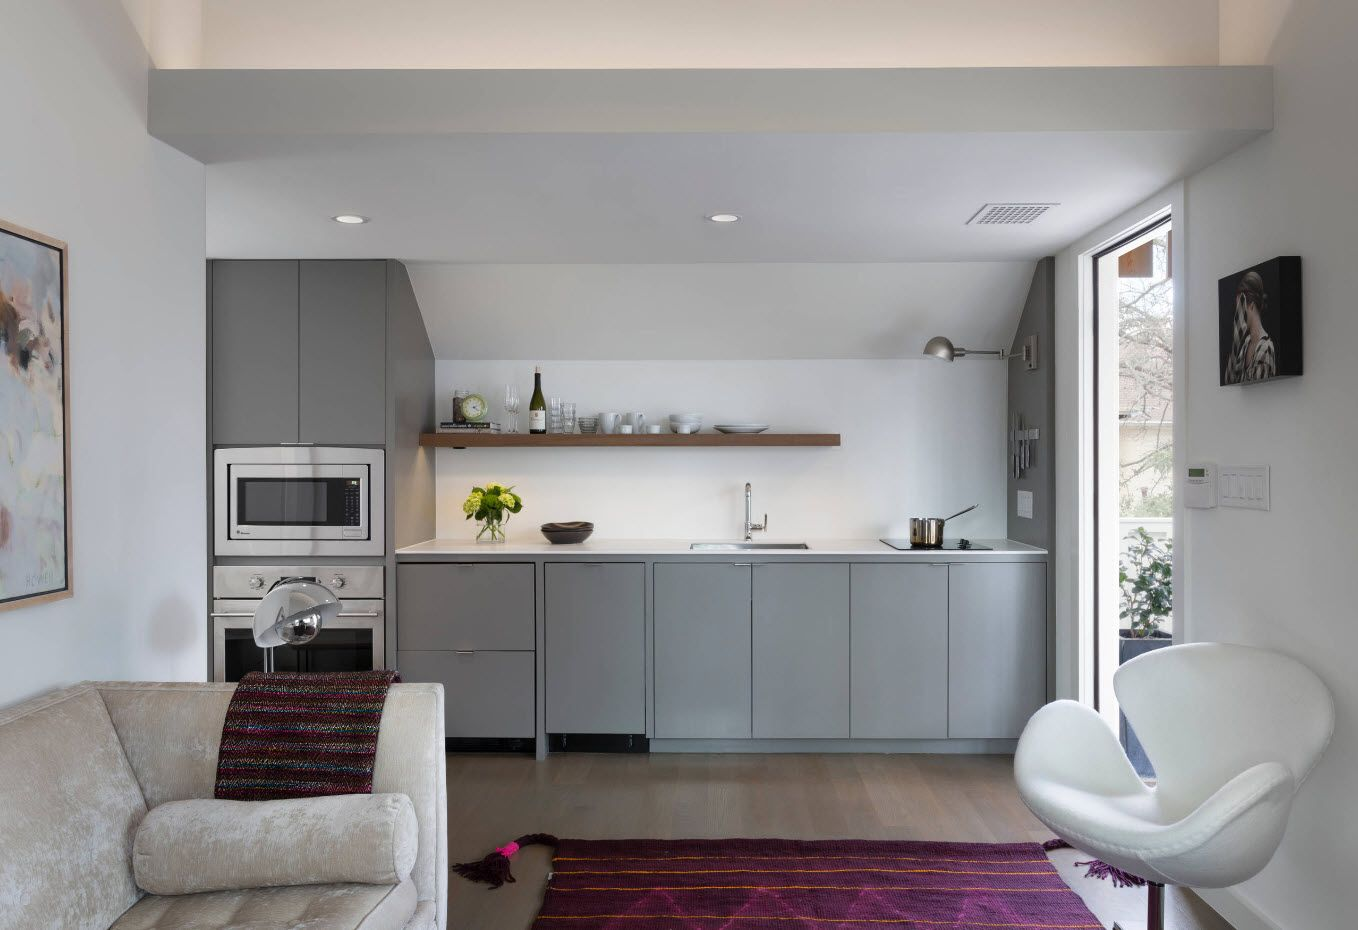 Neat white wall decoration and gray facades of the kitchen